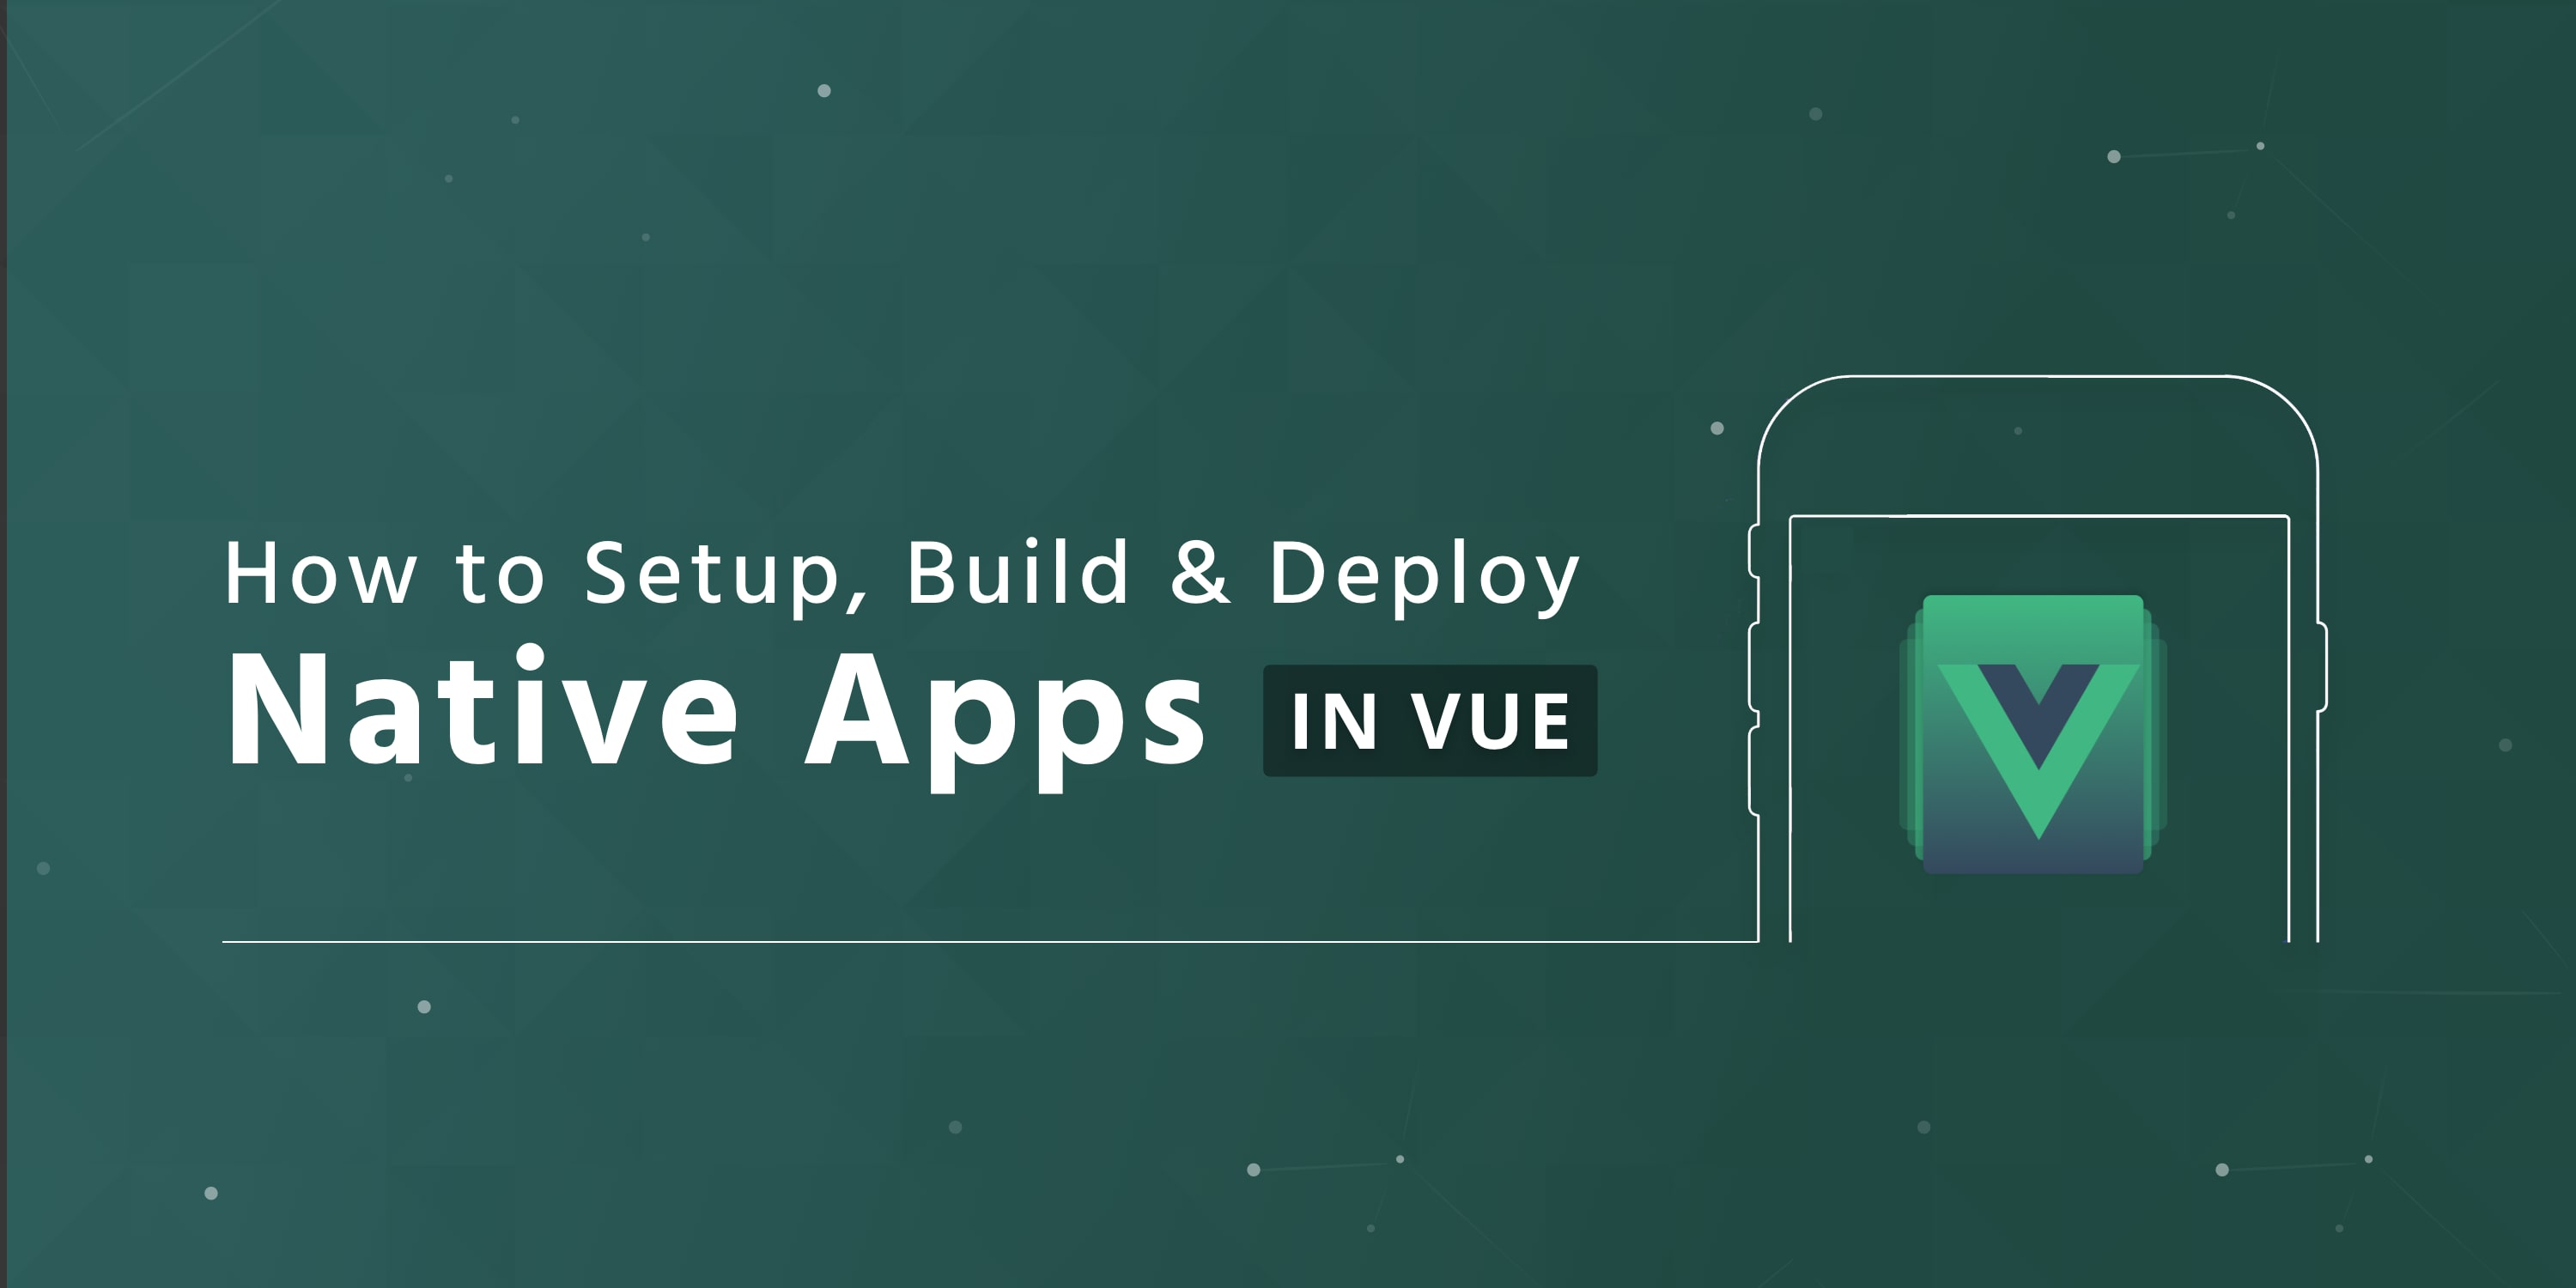 How to Setup, Build and Deploy Native Apps with Vue ― Scotch io